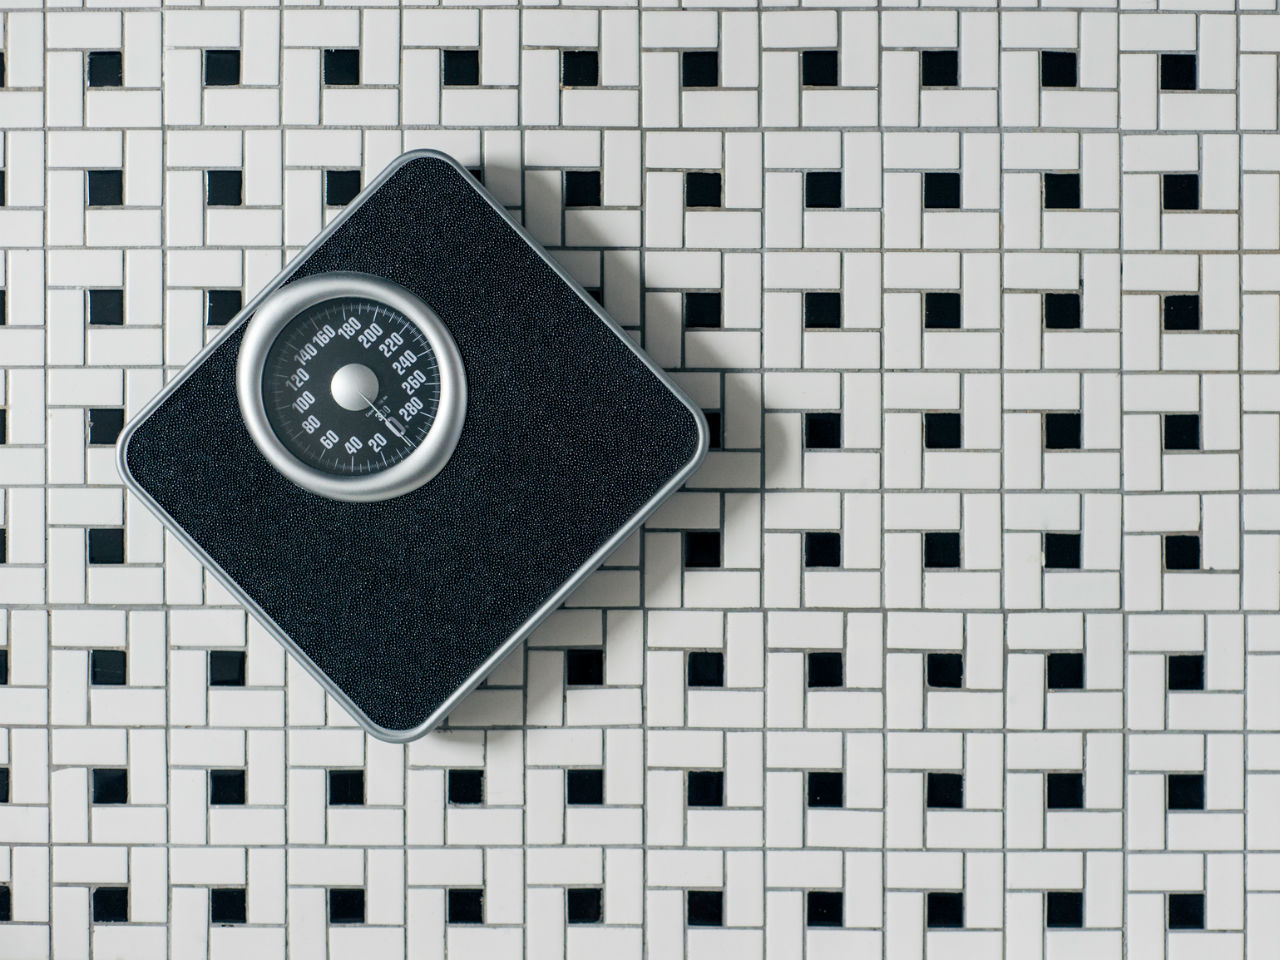 A weighing scale on a tiled floor